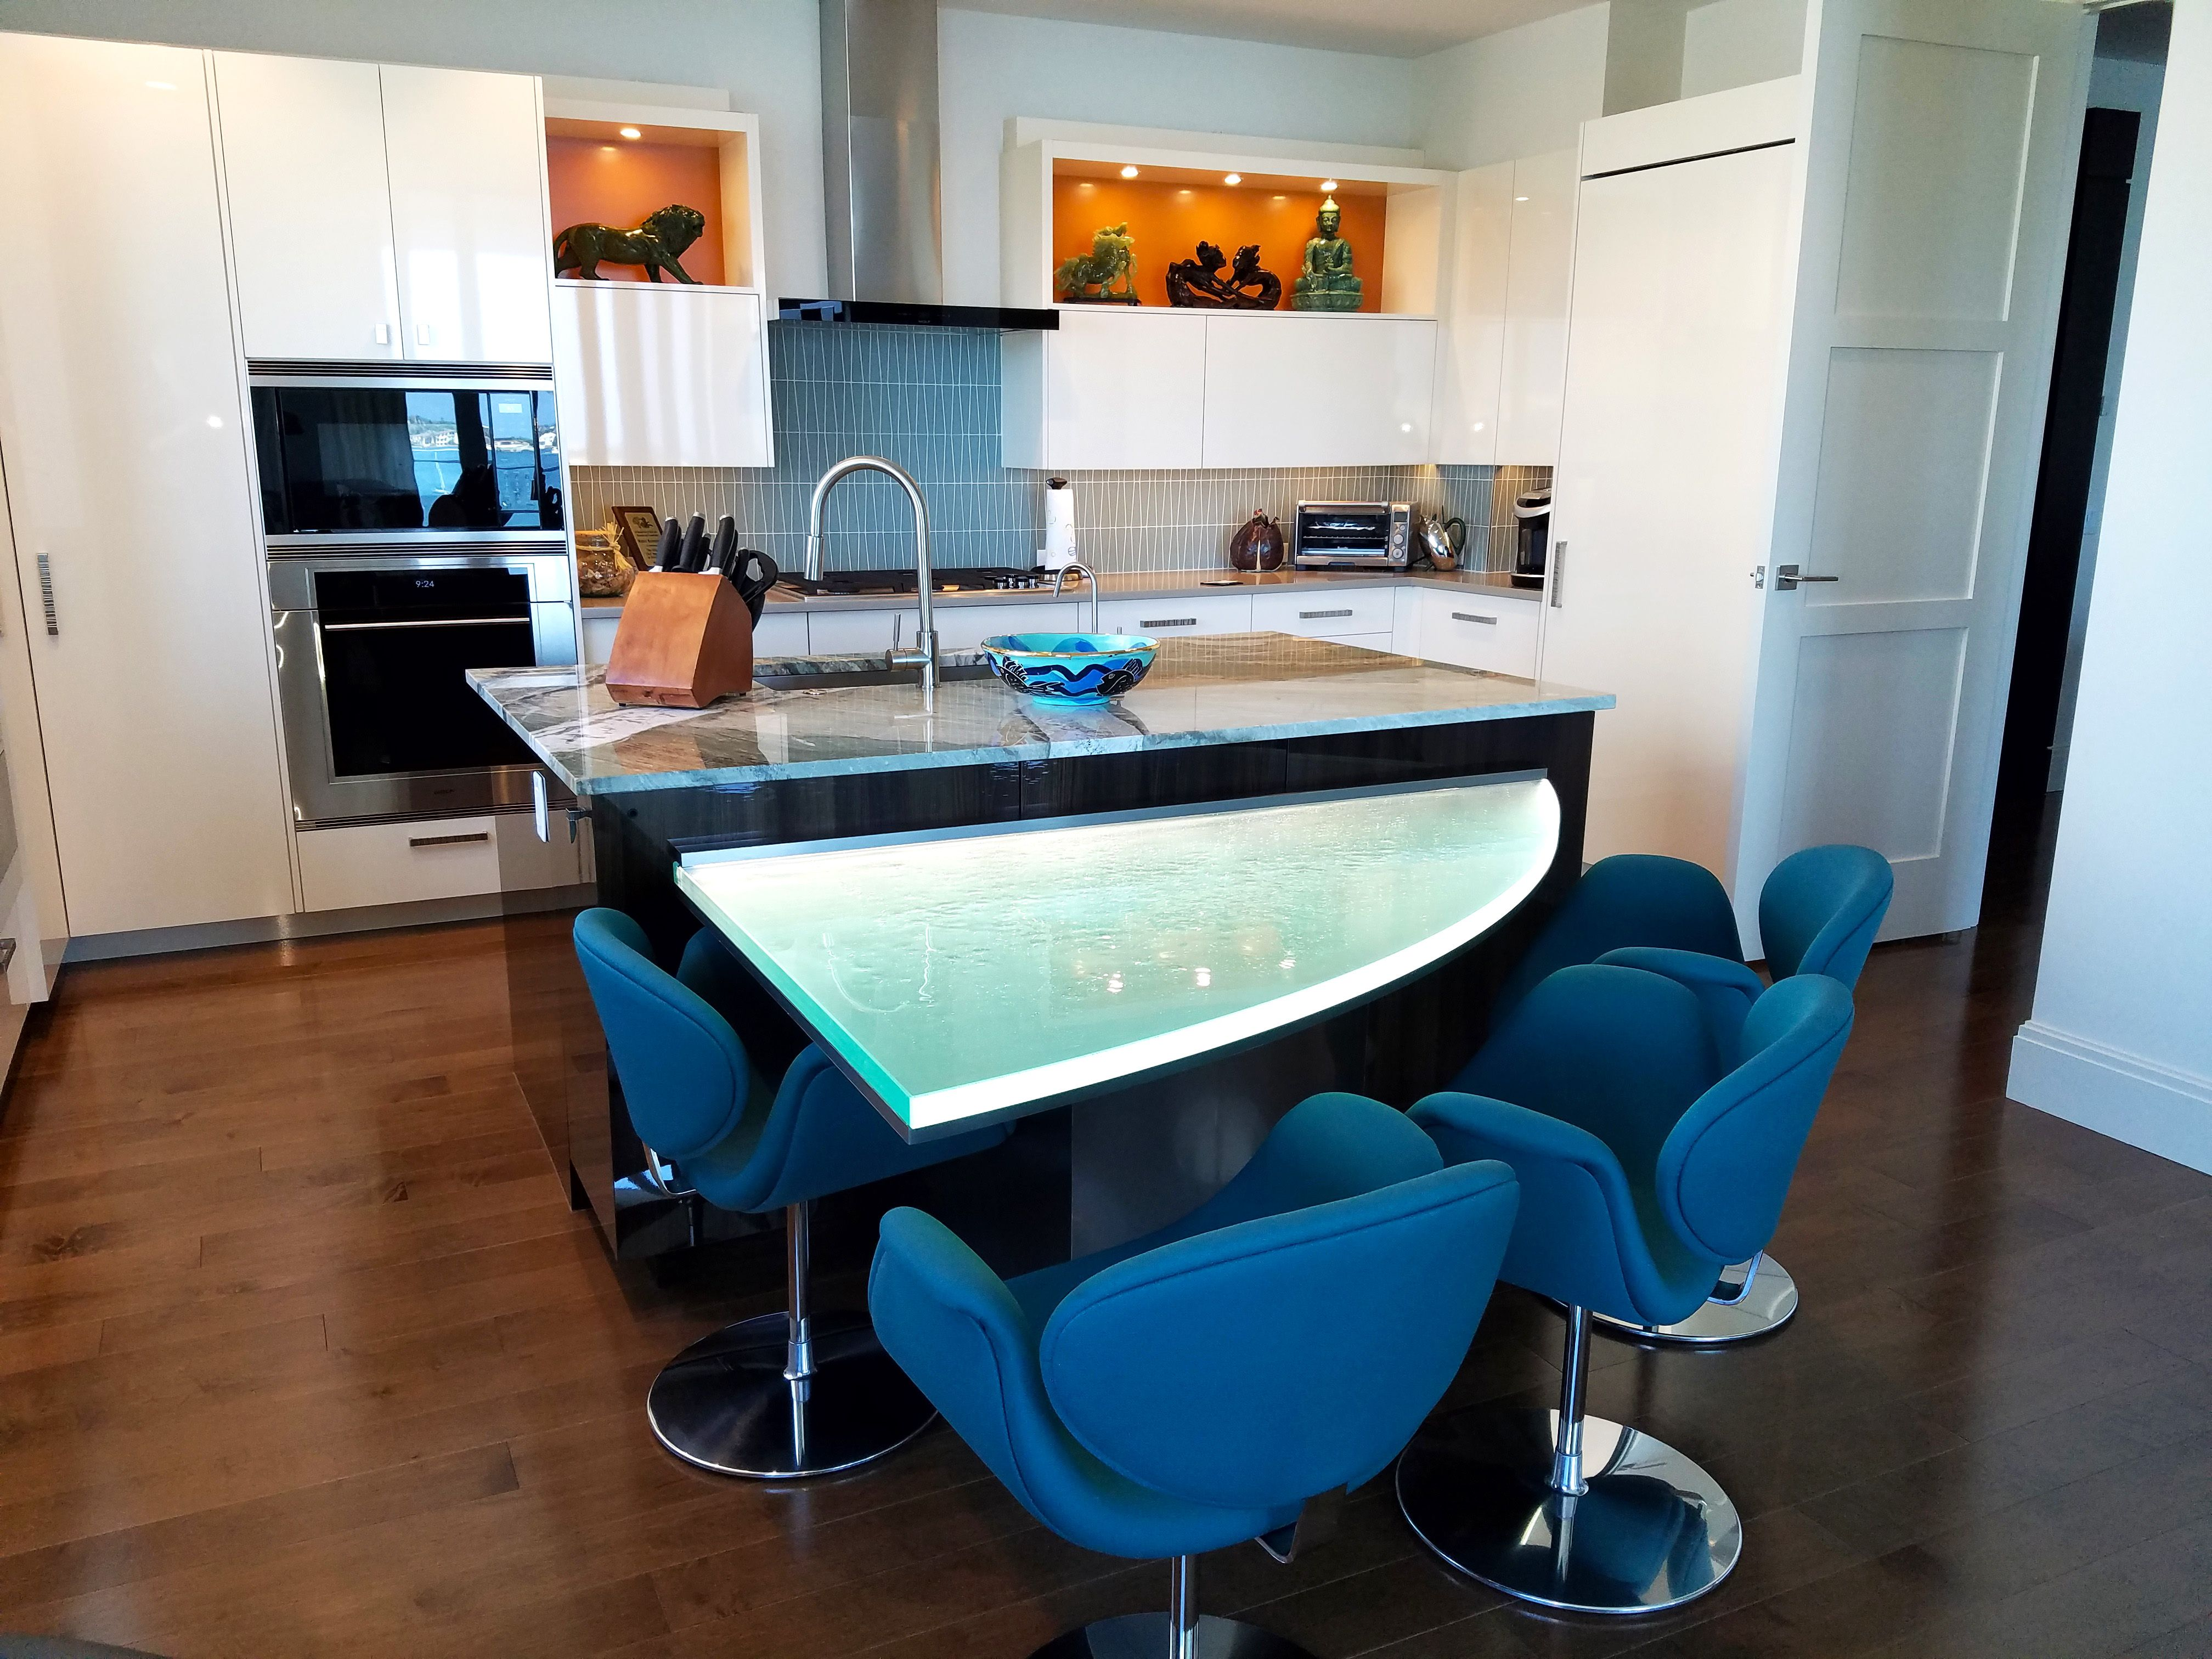 Embellish The Design Of Your Kitchen By Adding A Thermoformed